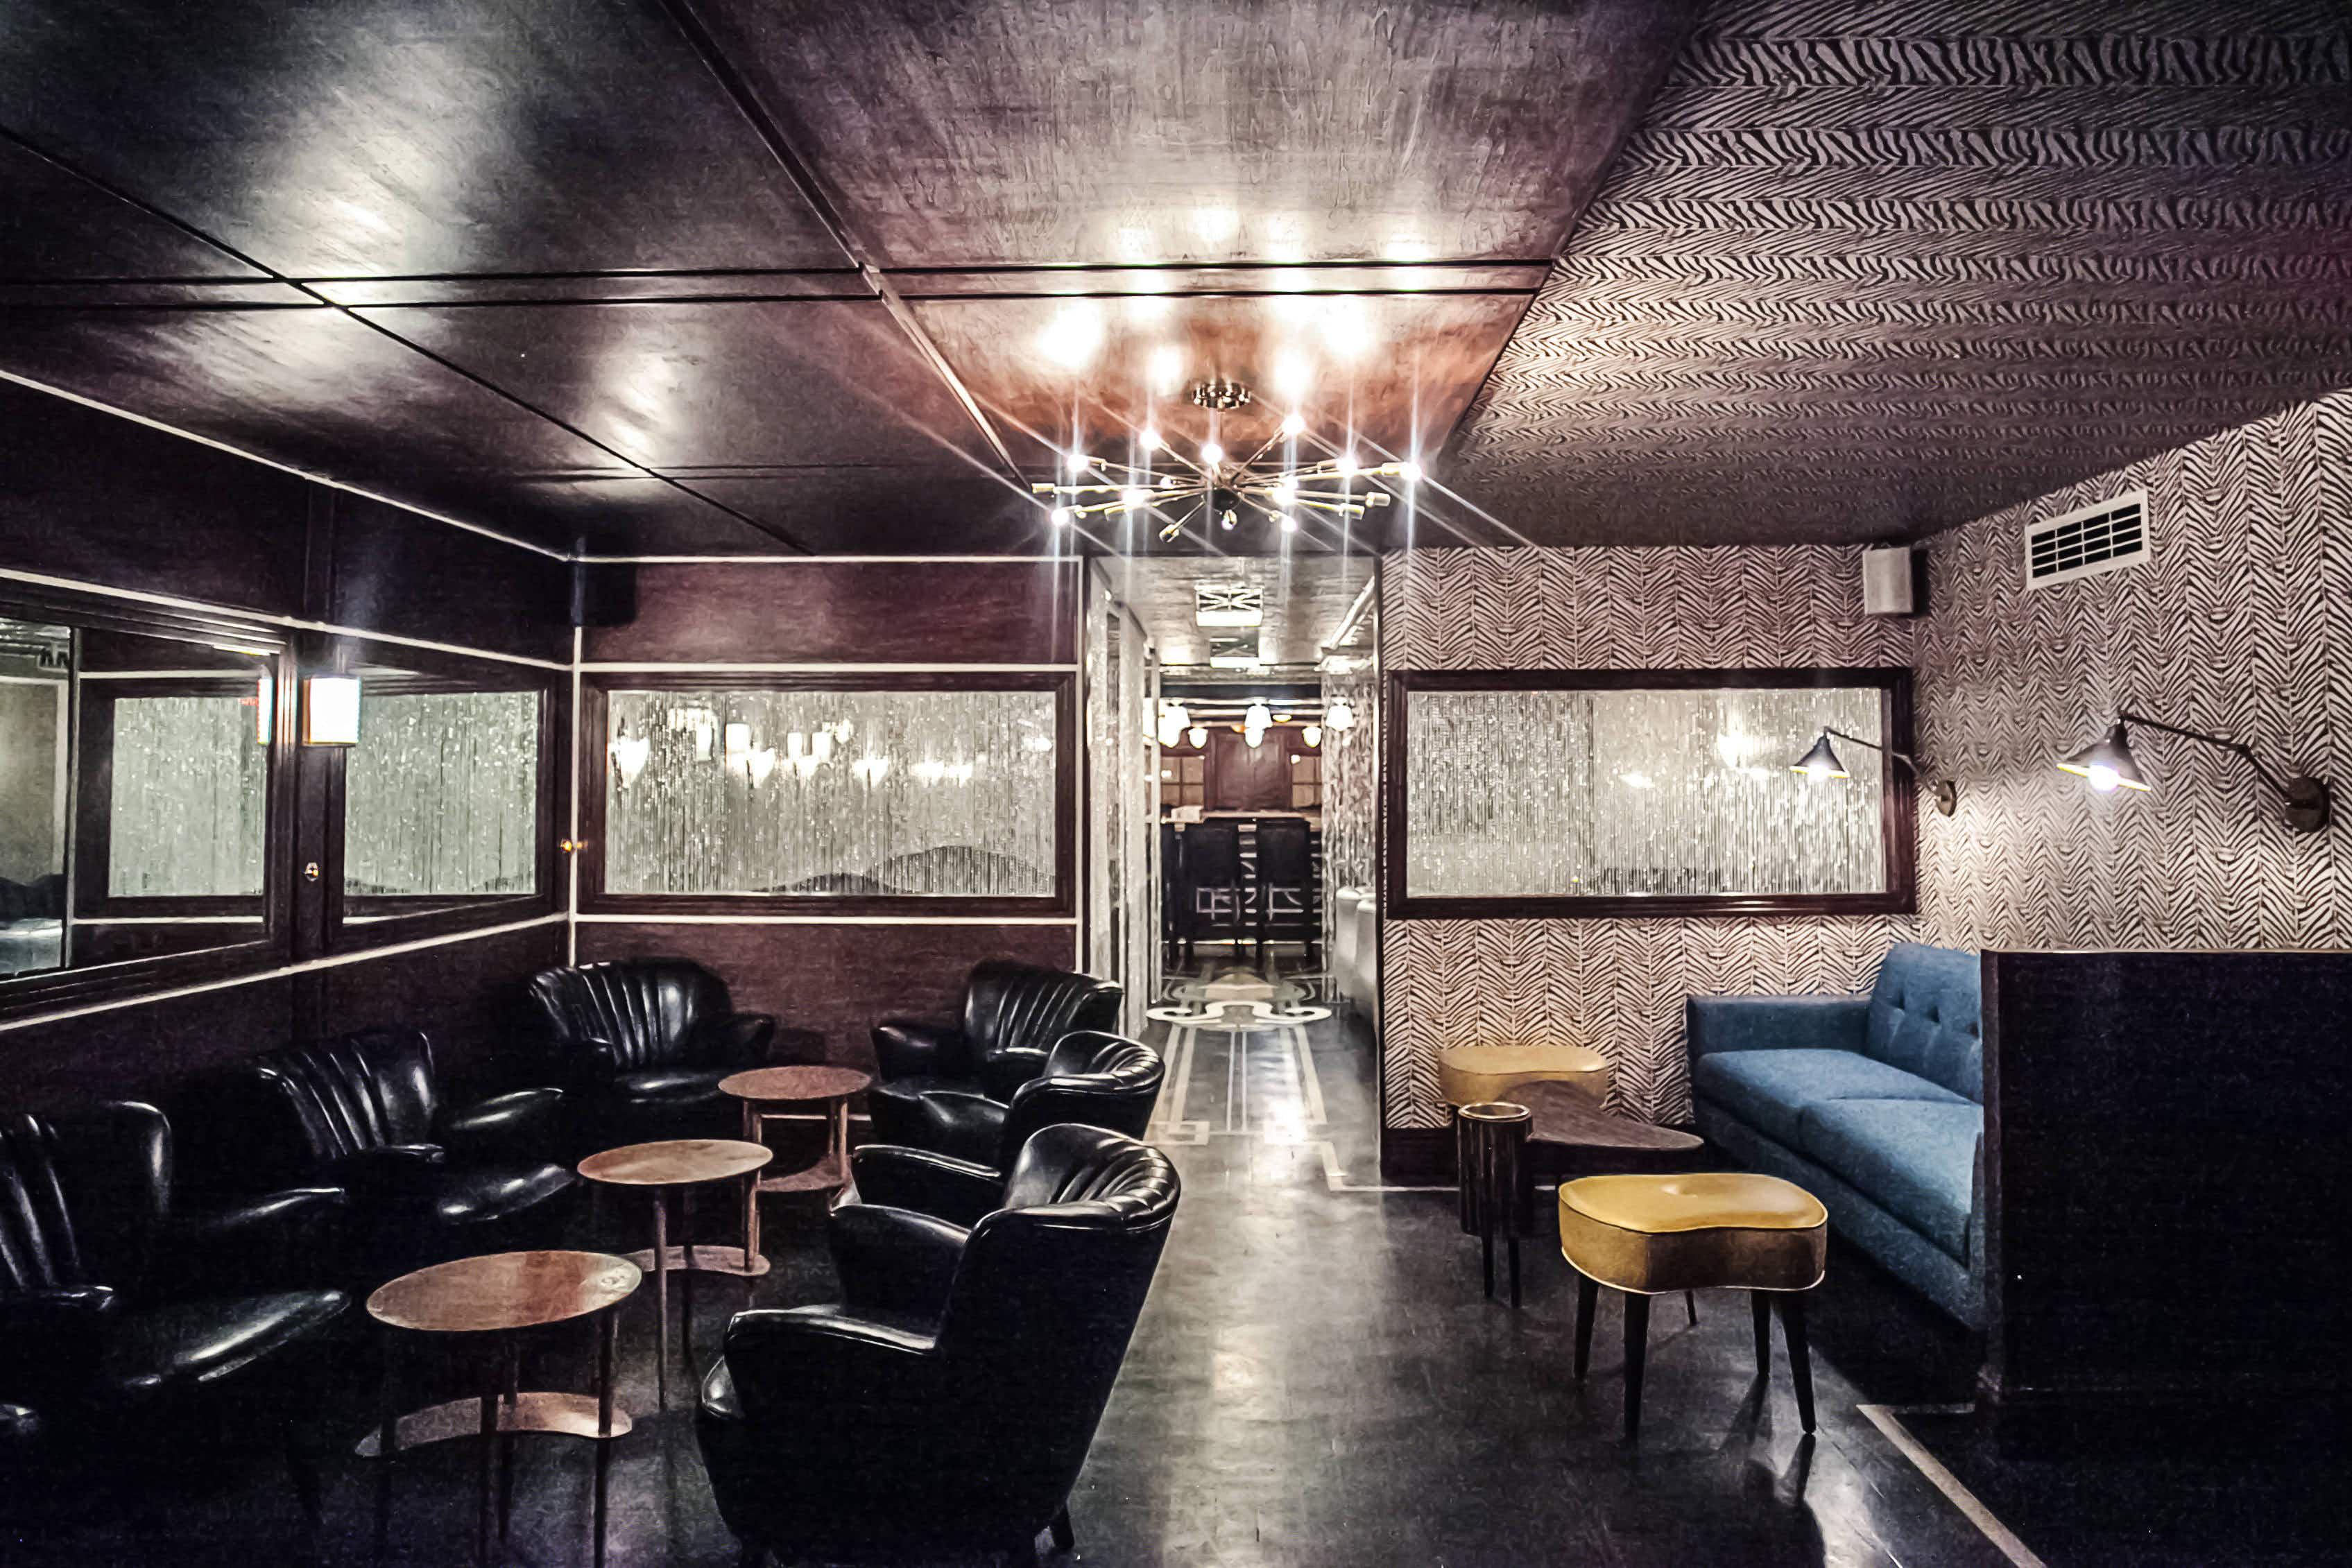 Take a step back in time at this award-winning speakeasy in the Big Apple